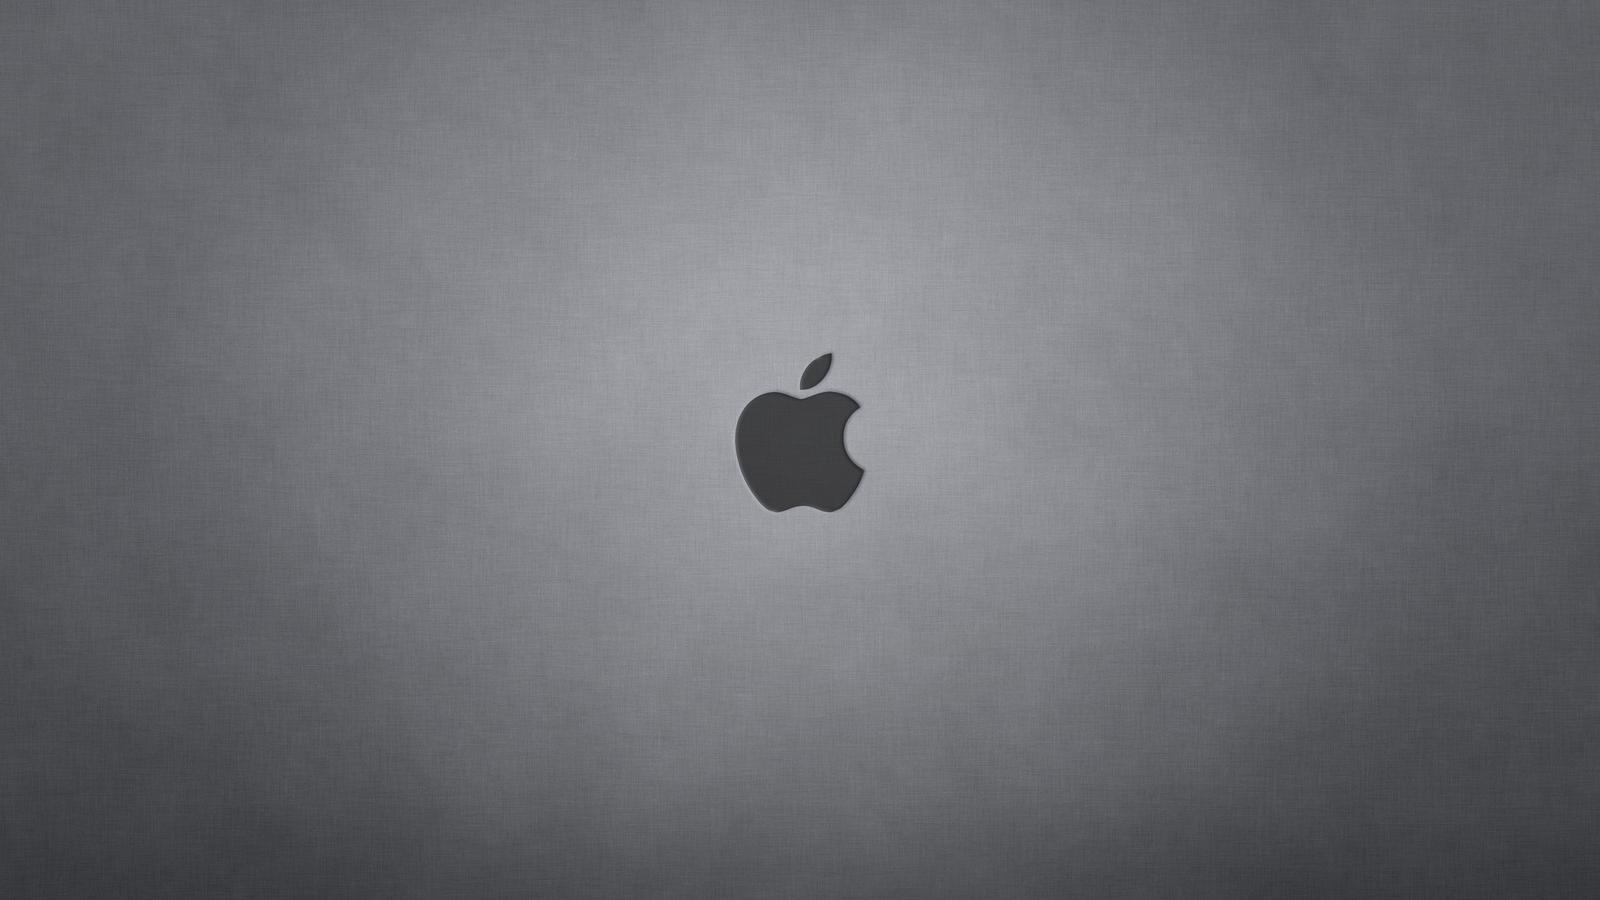 Mac Os Backgrounds Wallpaper Cave